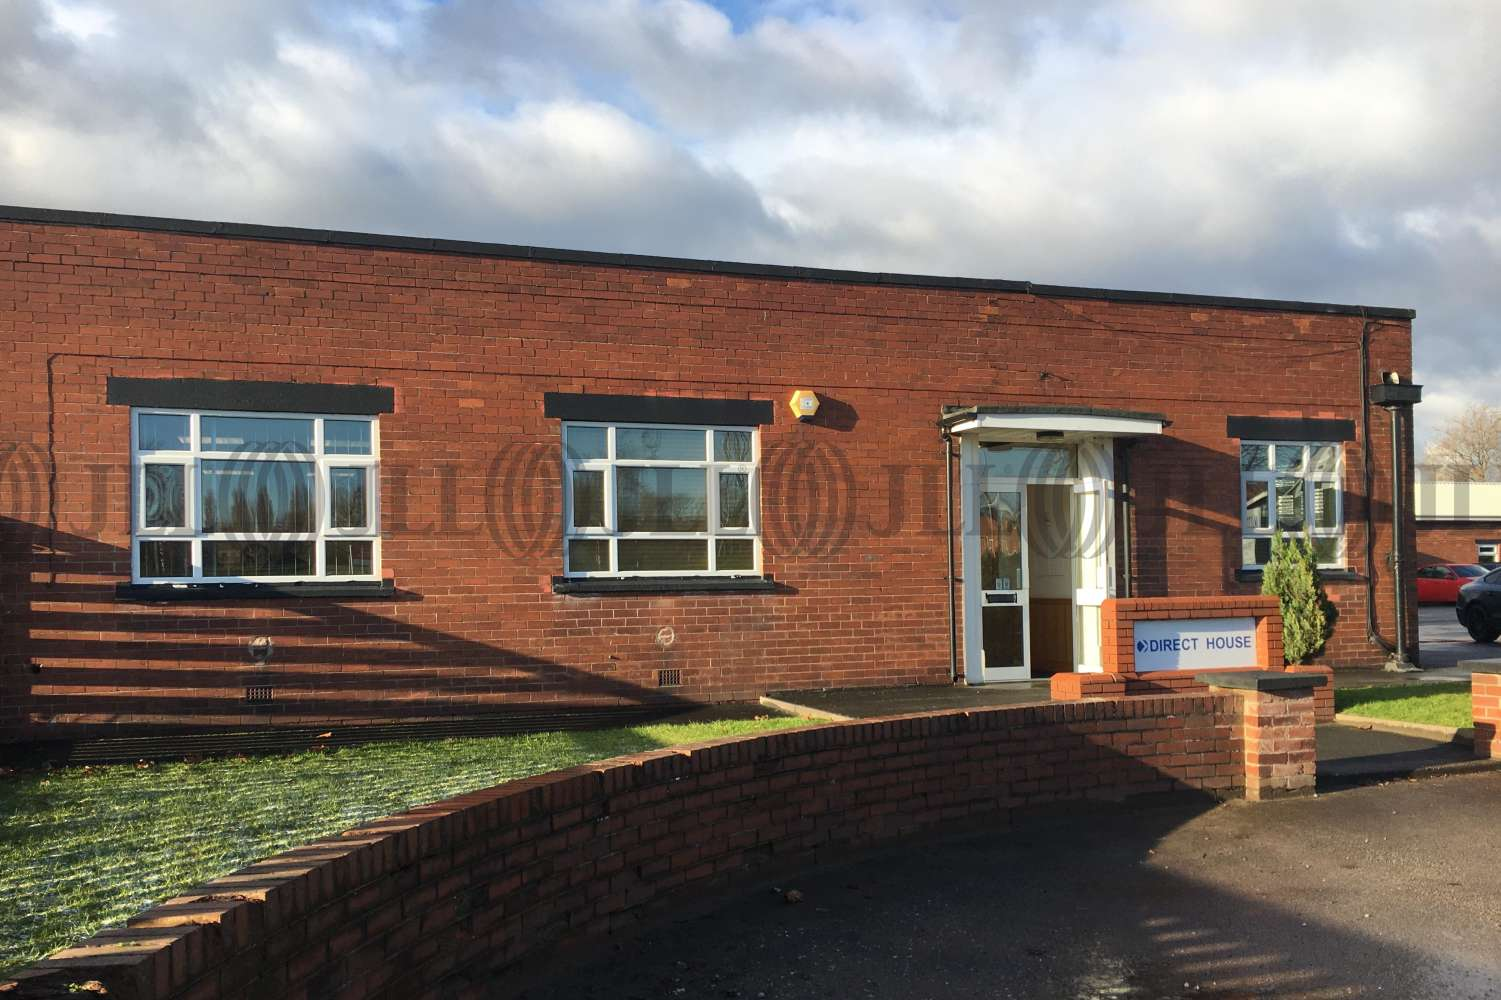 Office Northwich, CW8 4EE - Direct House